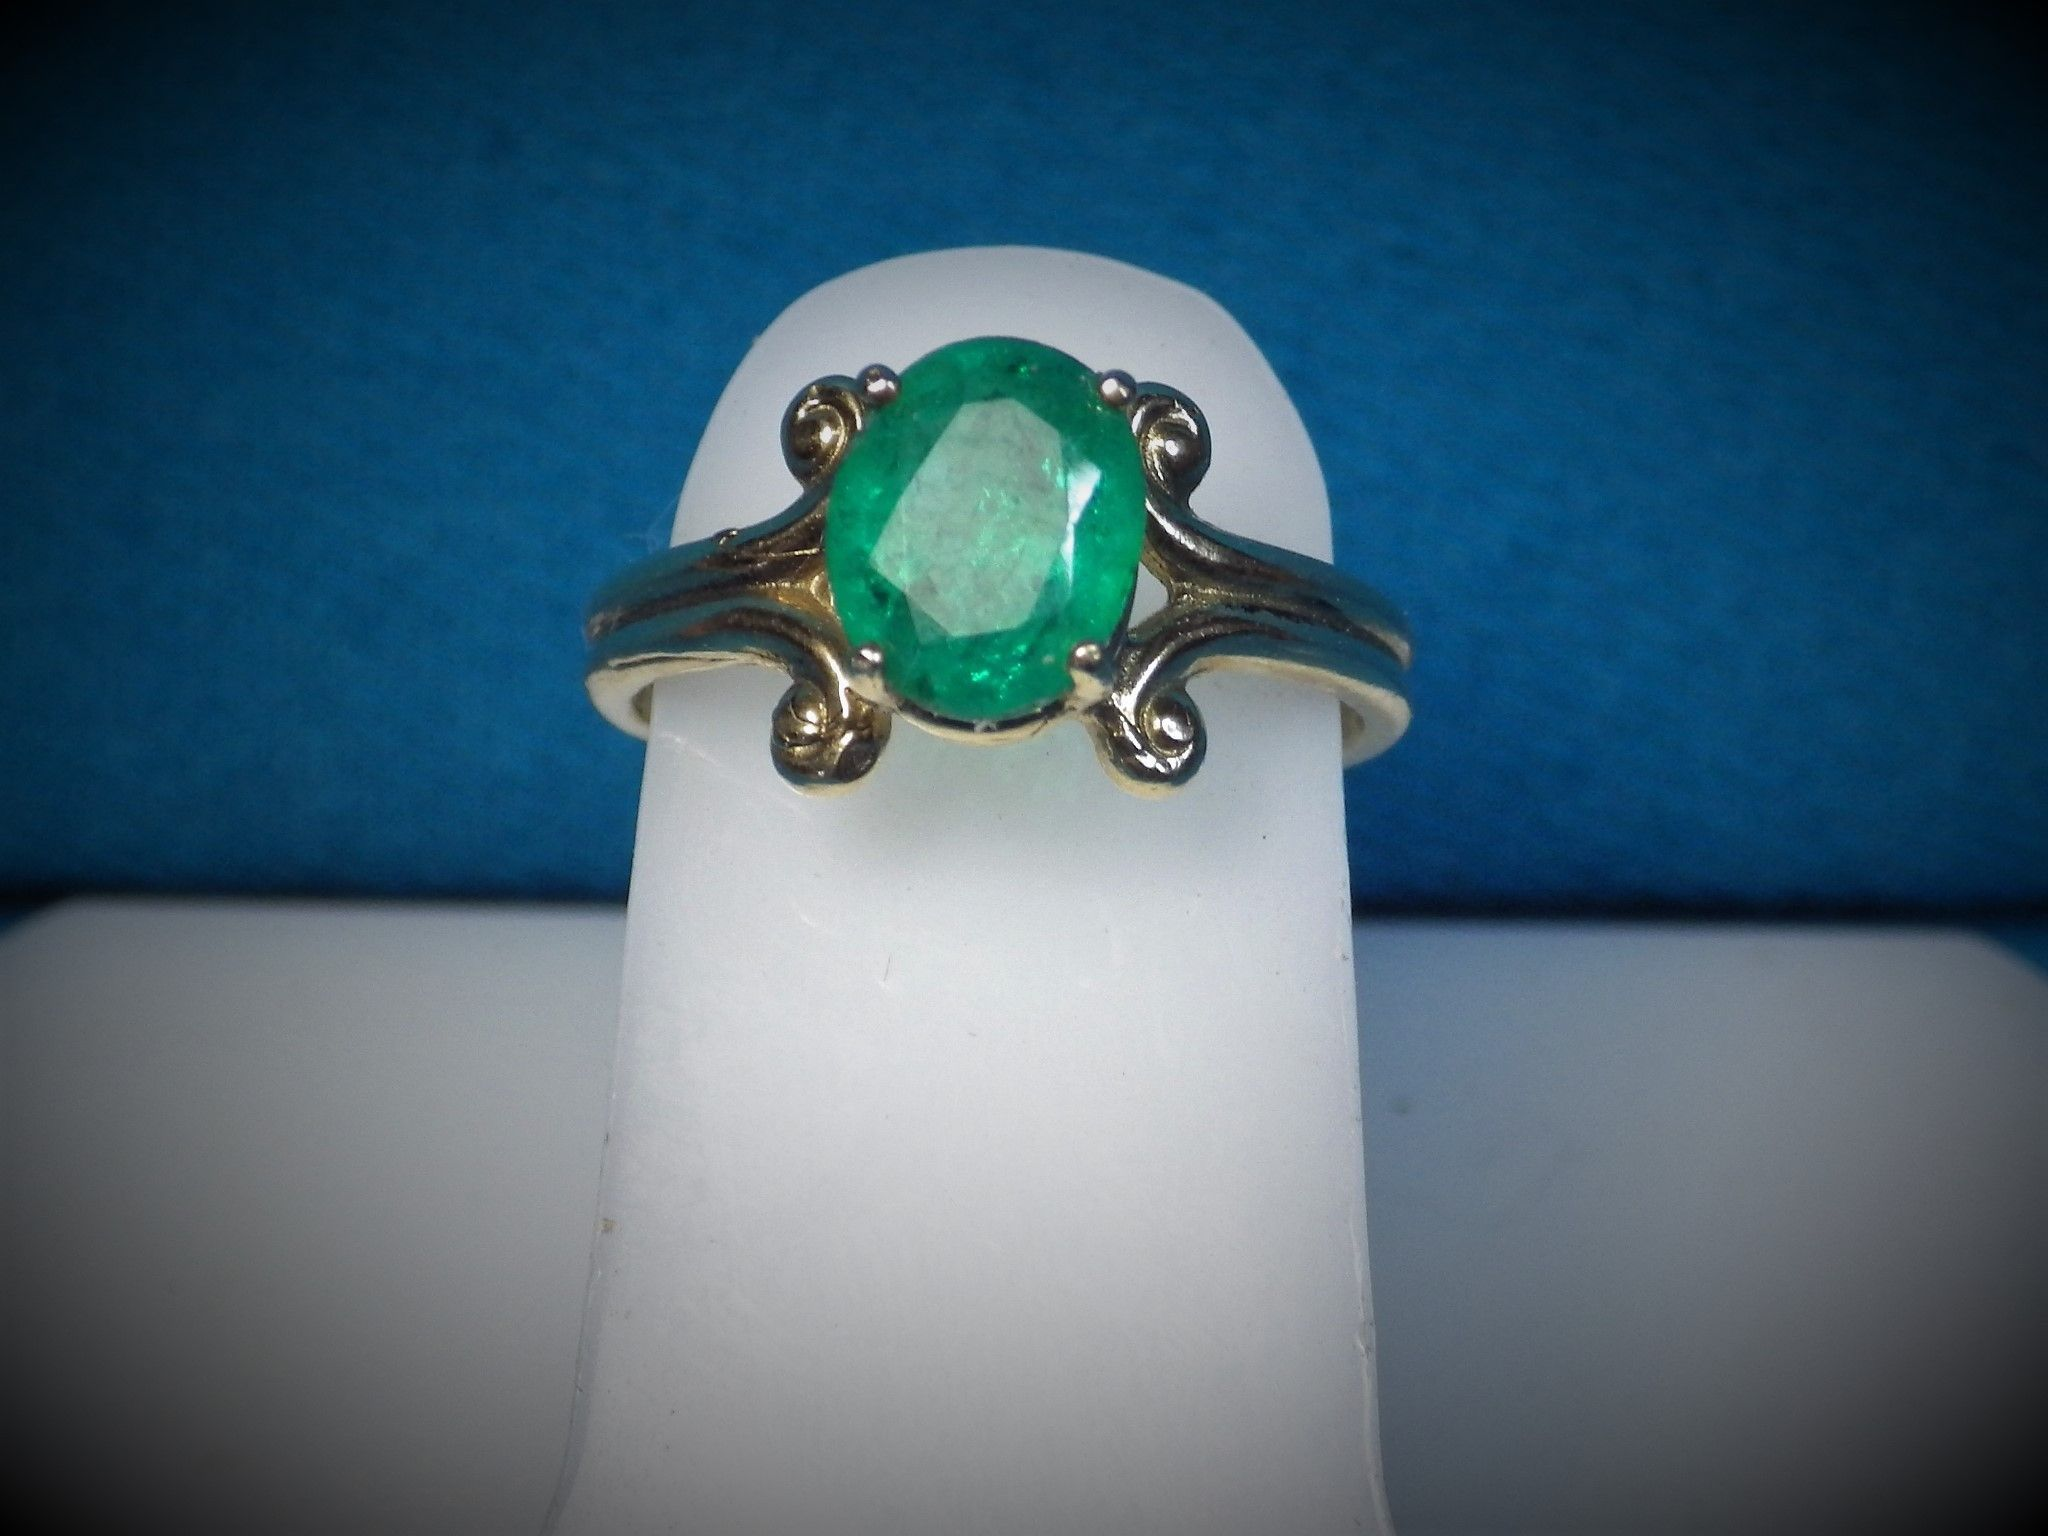 Brand New Item added to our Catalog 14K Gold 1.5ct Em... Just in time for the Holidays http://bestwirejewelry.com/products/14k-gold-1-5ct-emerald-ring?utm_campaign=social_autopilot&utm_source=pin&utm_medium=pin You will Love!